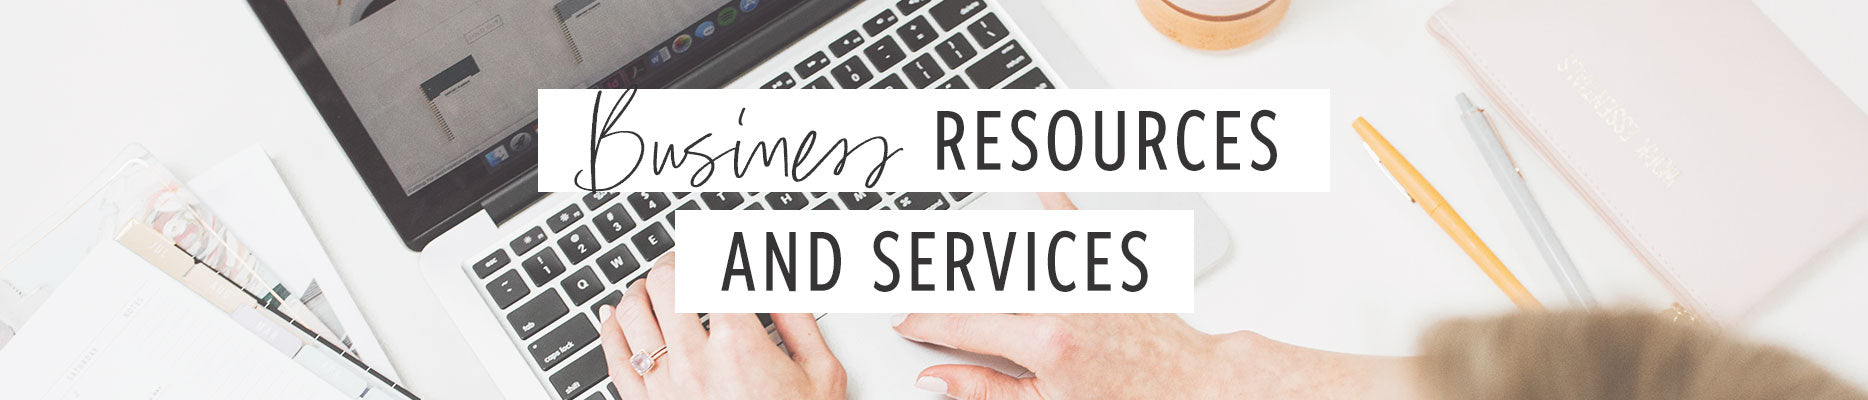 Workspacery Business Resources and Services